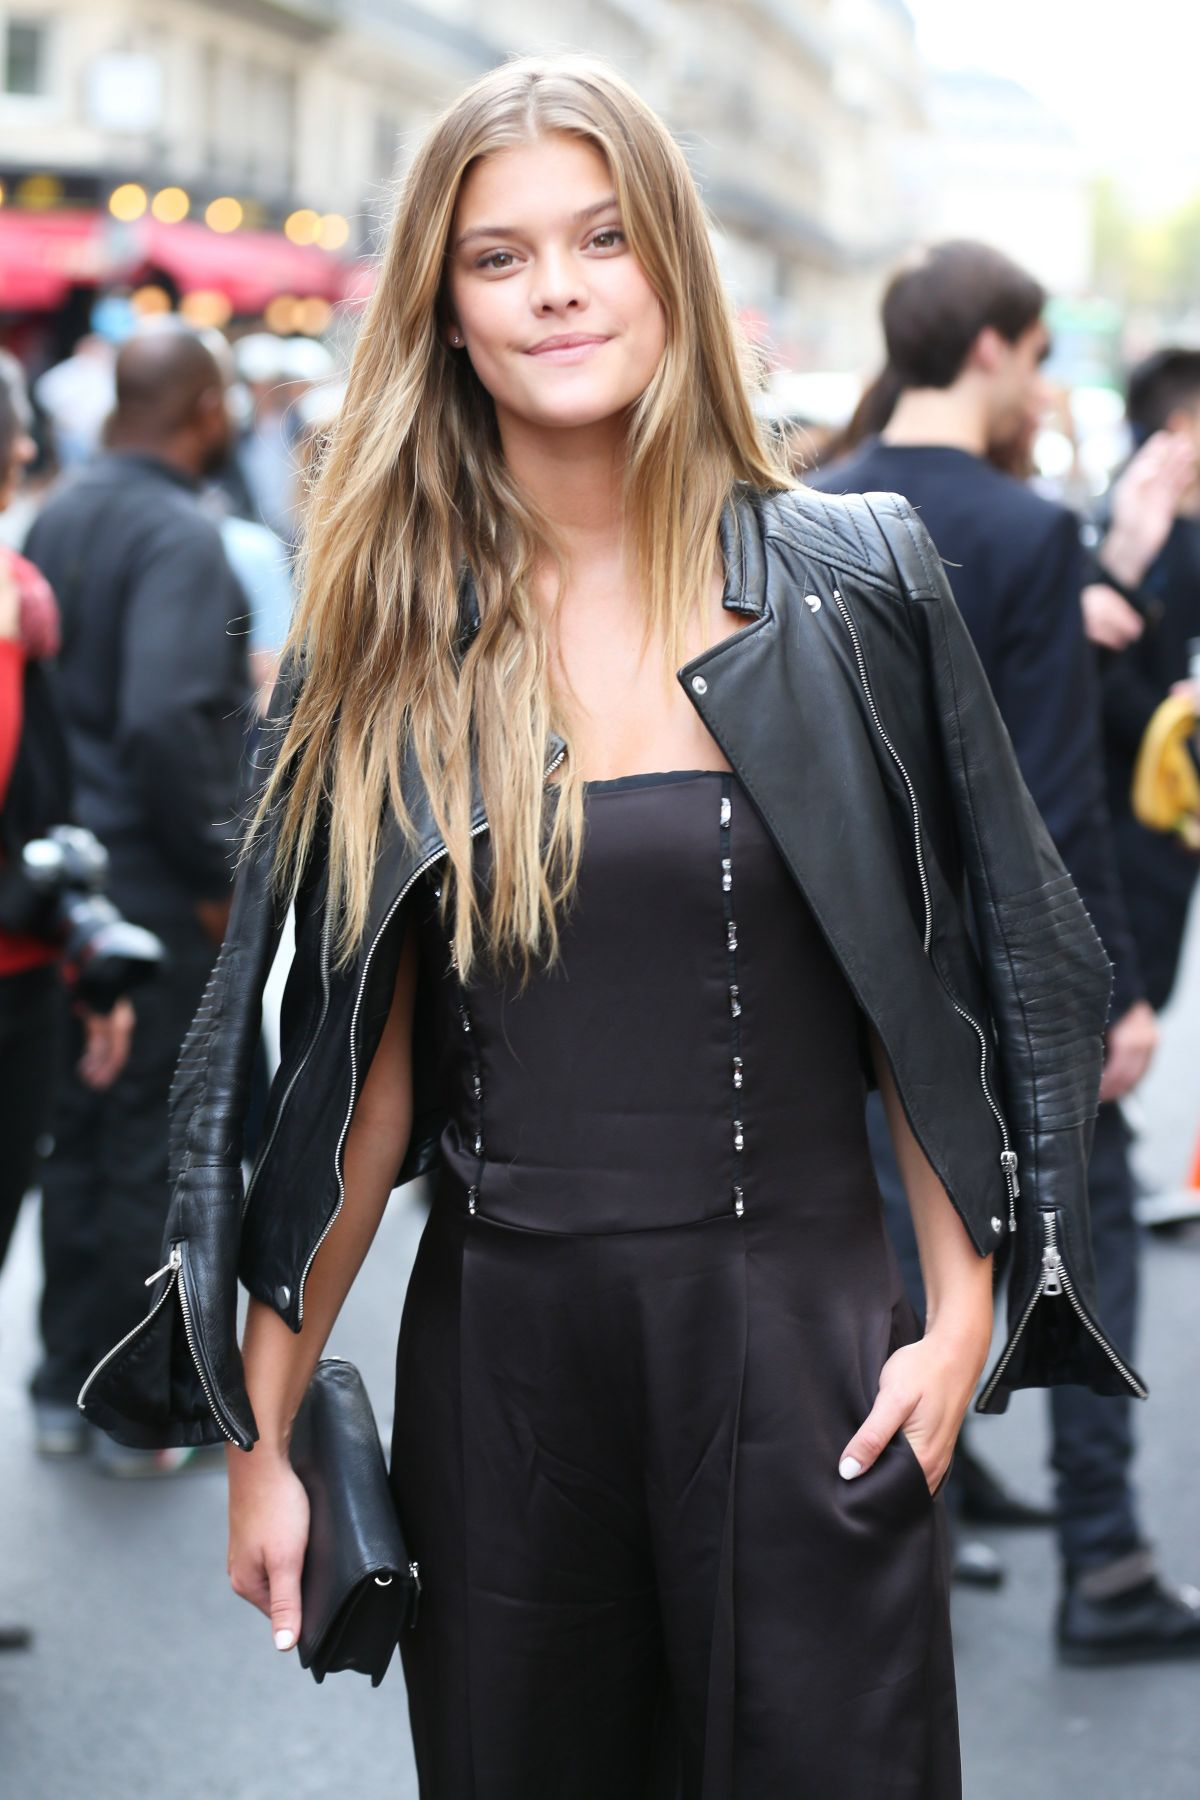 NINA AGDAL Arrives at Givenchy Fashion Show in Paris